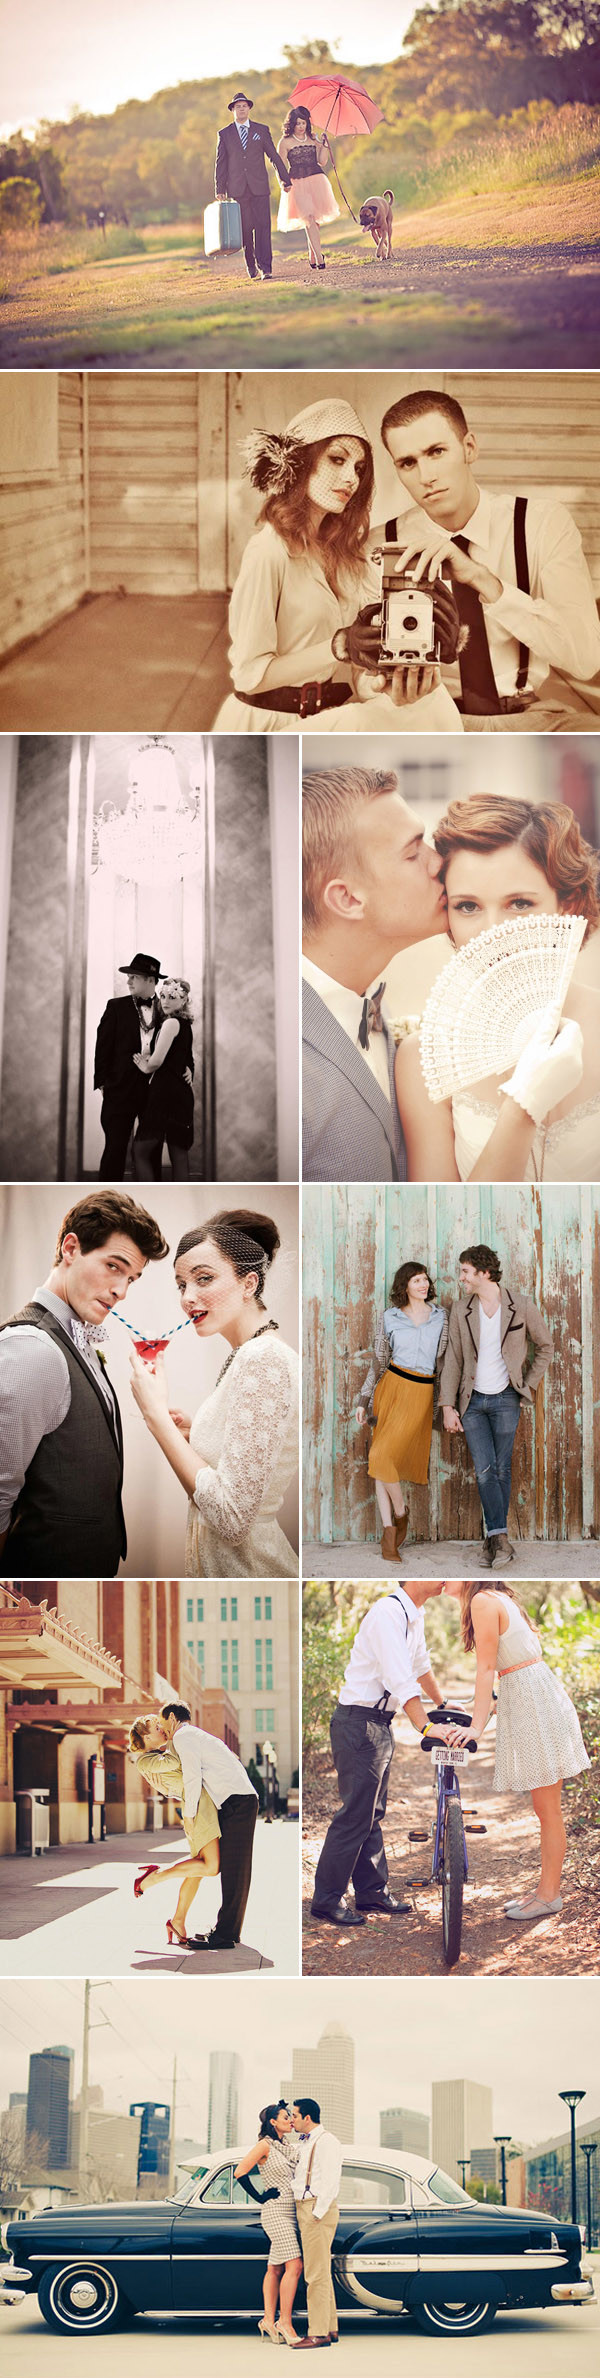 vintage inspired wedding photo ideas